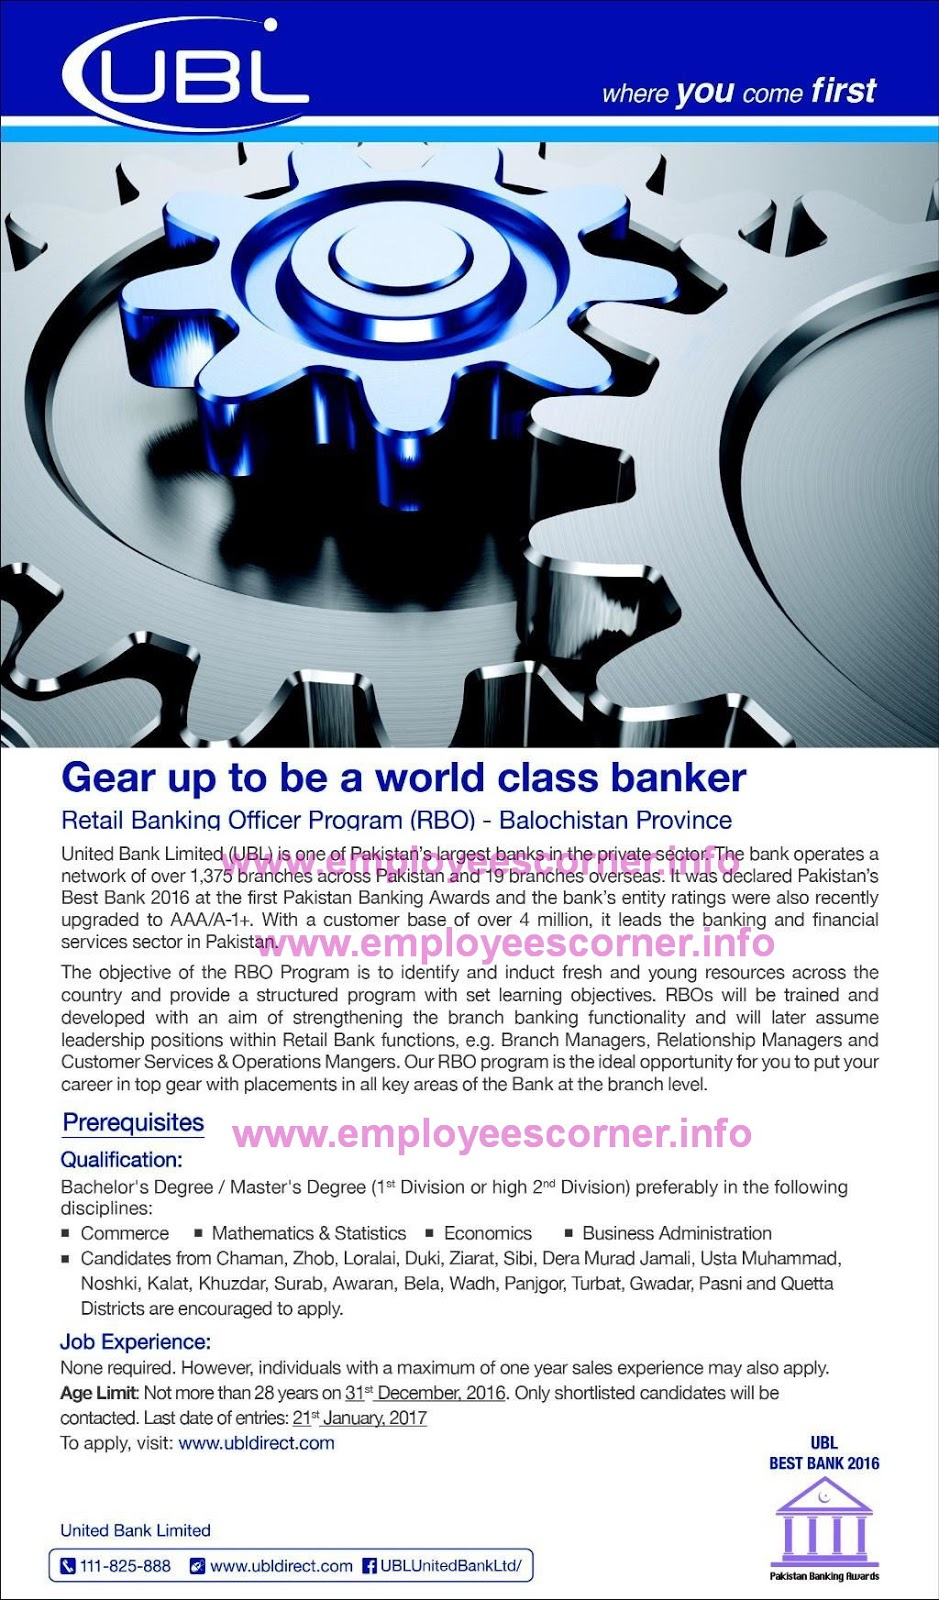 online banking in pakistan Fill open online bank account in pakistan free, download blank or editable online sign, fax and printable from pc, ipad, tablet or mobile with pdffiller instantly no software.